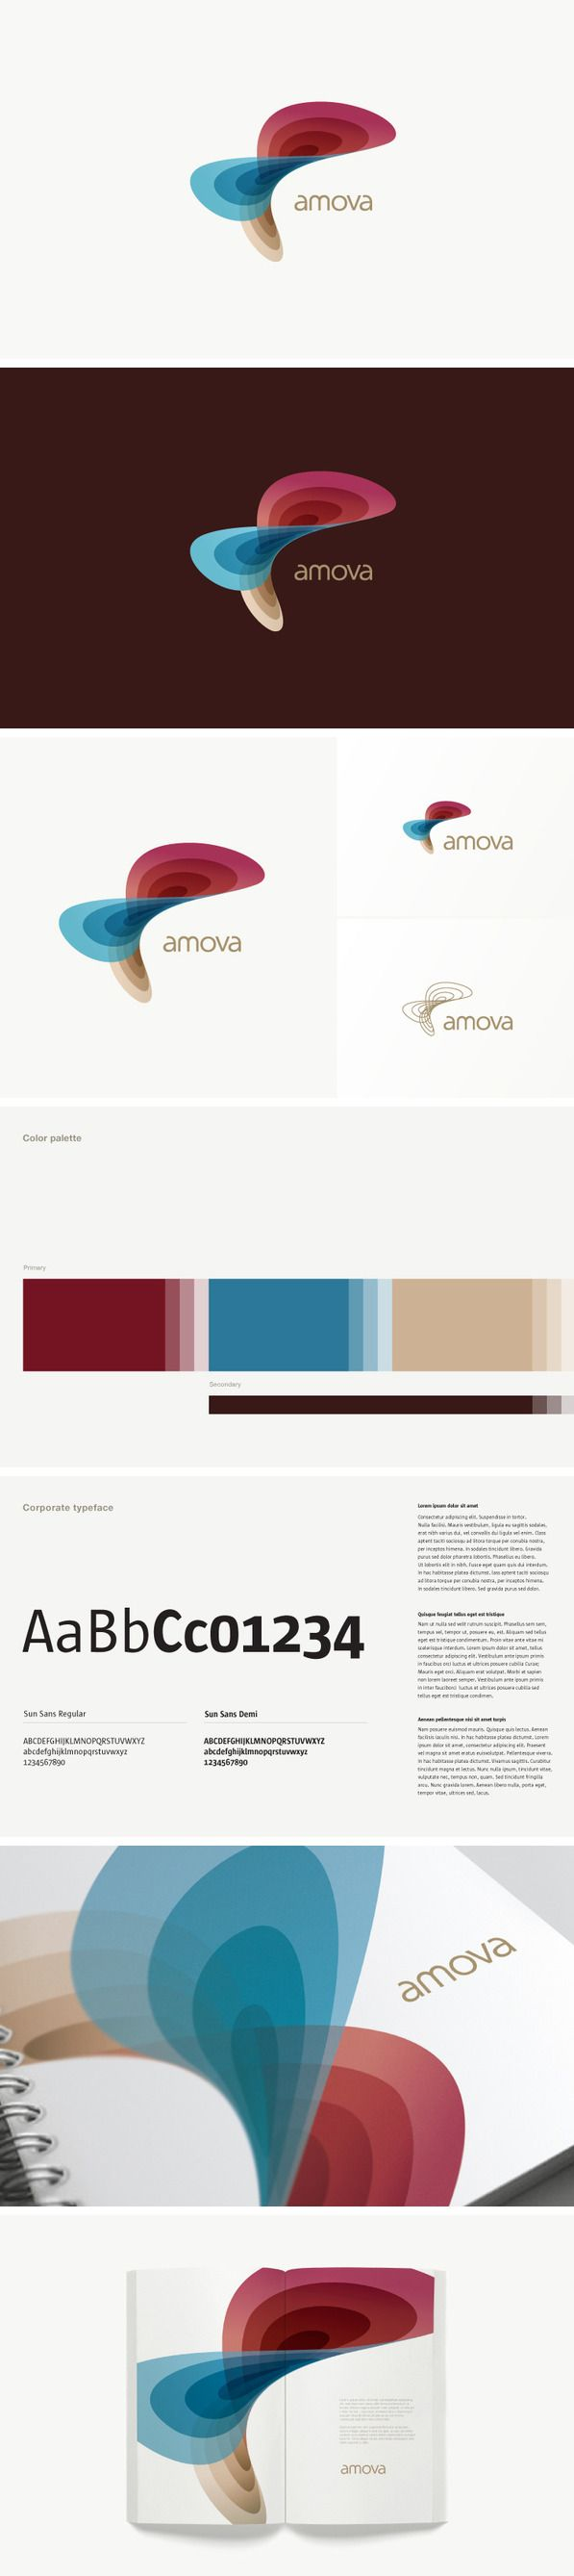 Corporate and brand identity Amova by Roger Oddone